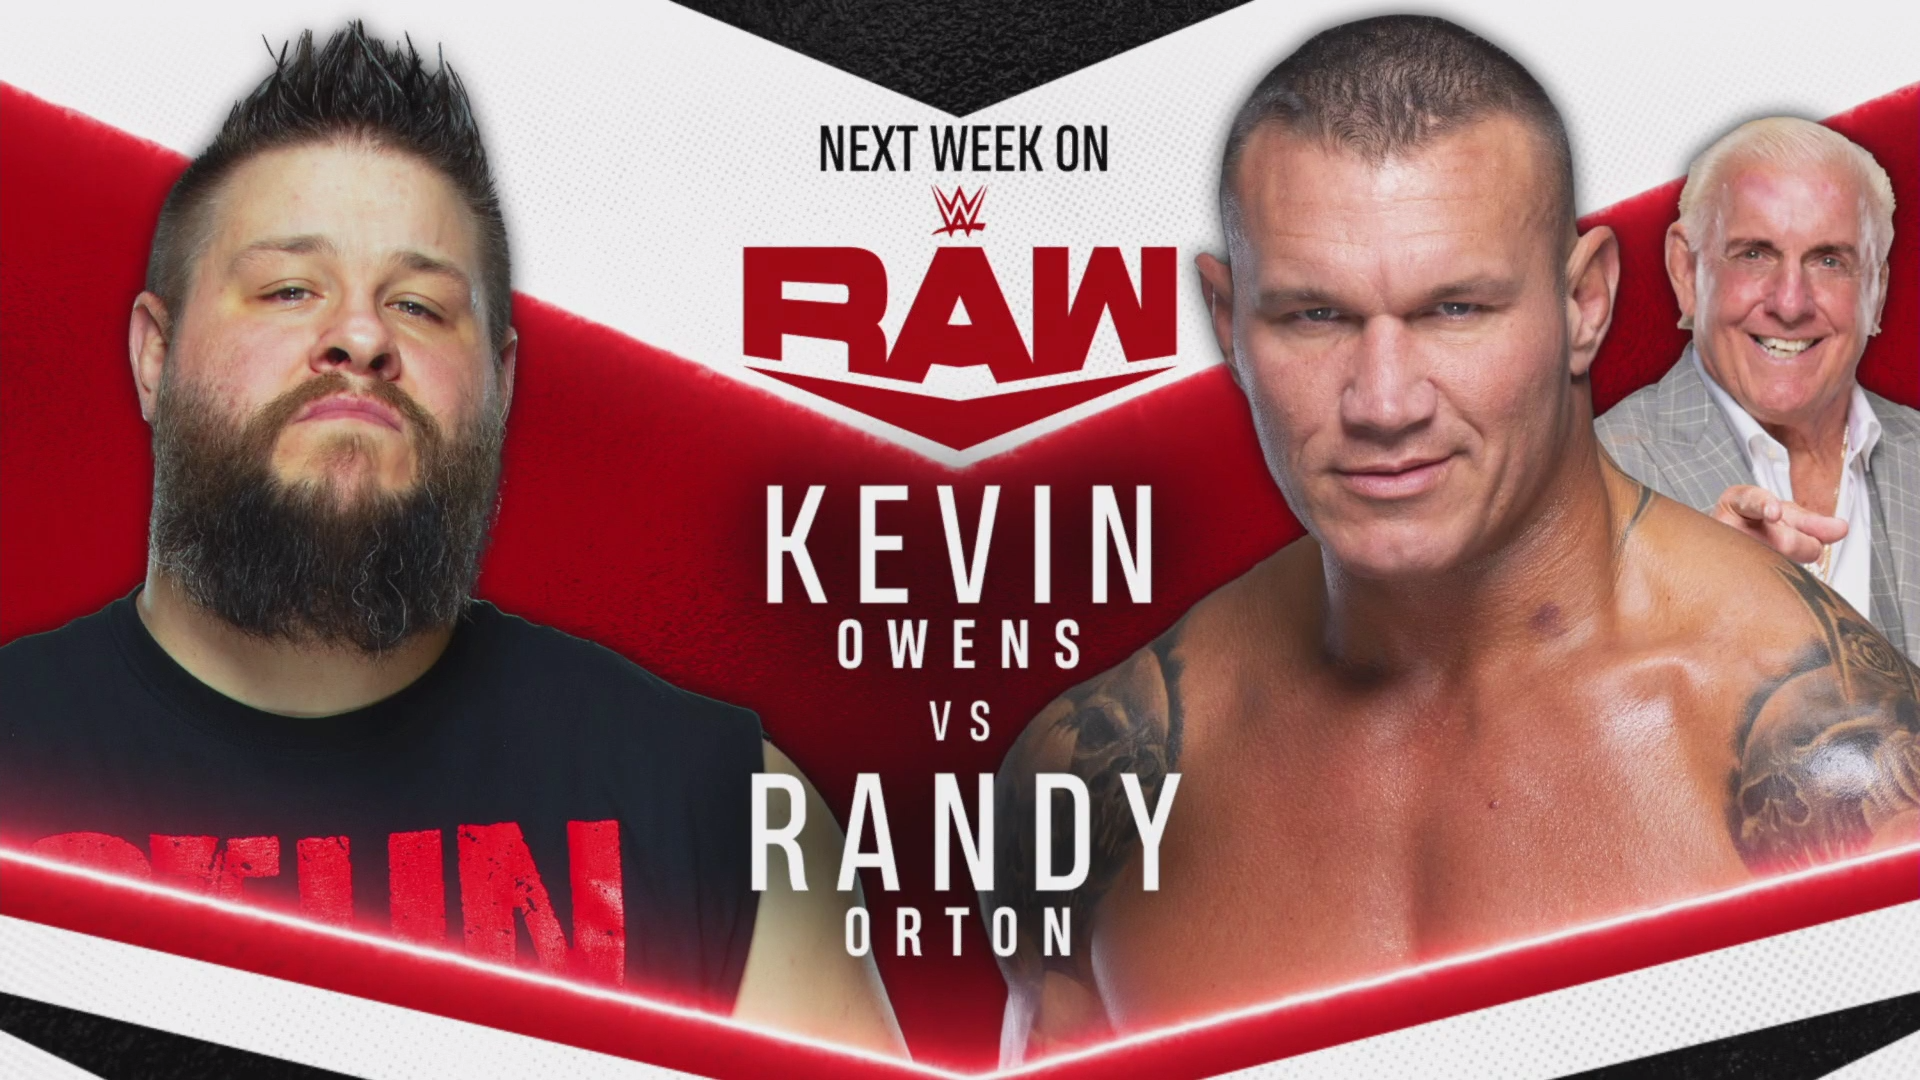 WWE Raw: Randy Orton vs Kevin Owens & Bayley vs Asuka Set For Next Week 1